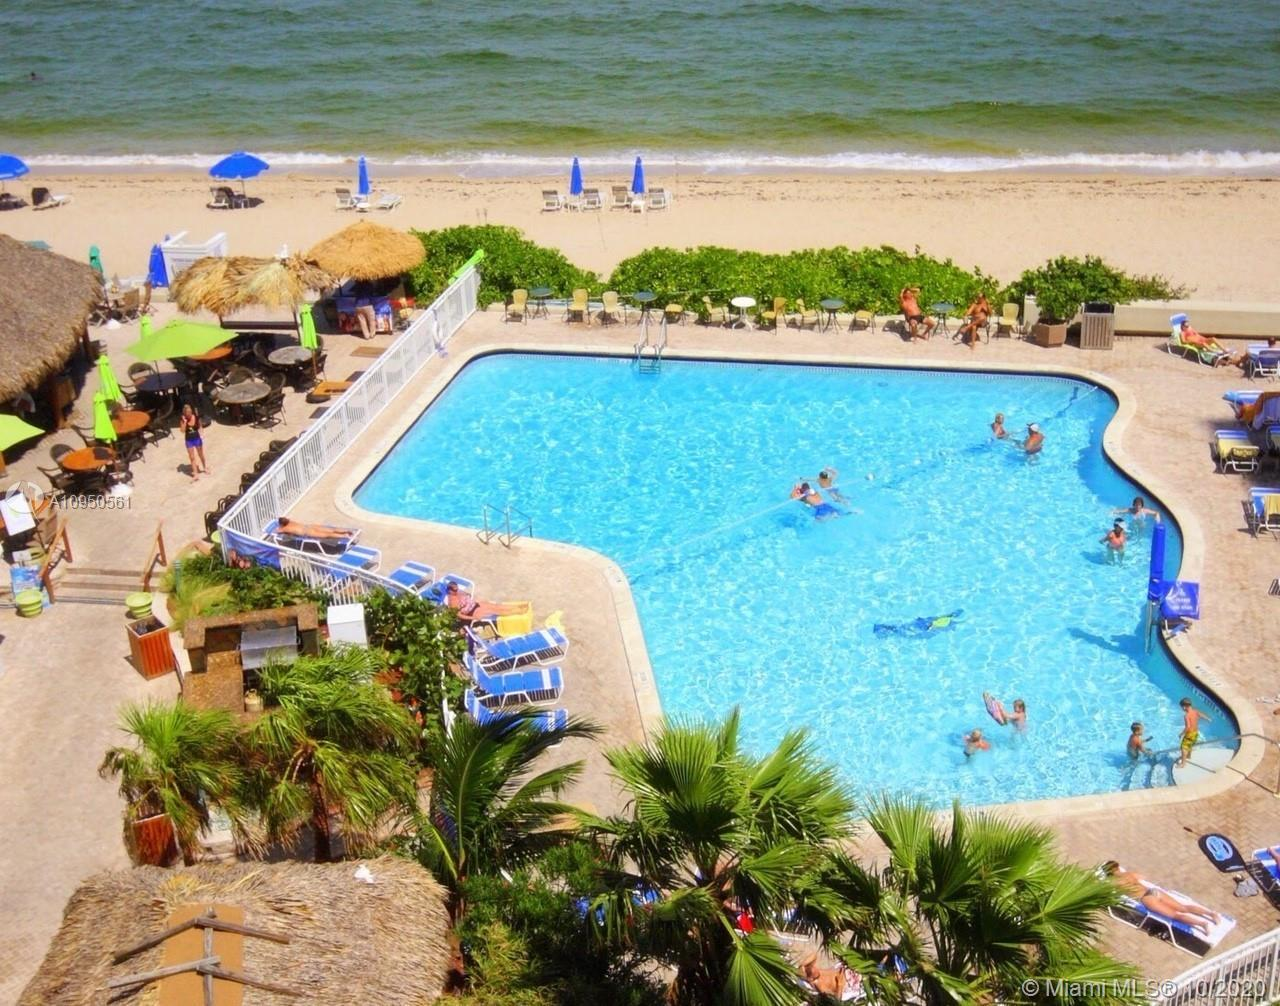 FULLY FURNISHED, 1BED/1BATH CONDO IN BULDING ON THE BEACH OCEAN FRONT HEATED POOL NEXT TO TIKIBAR, C